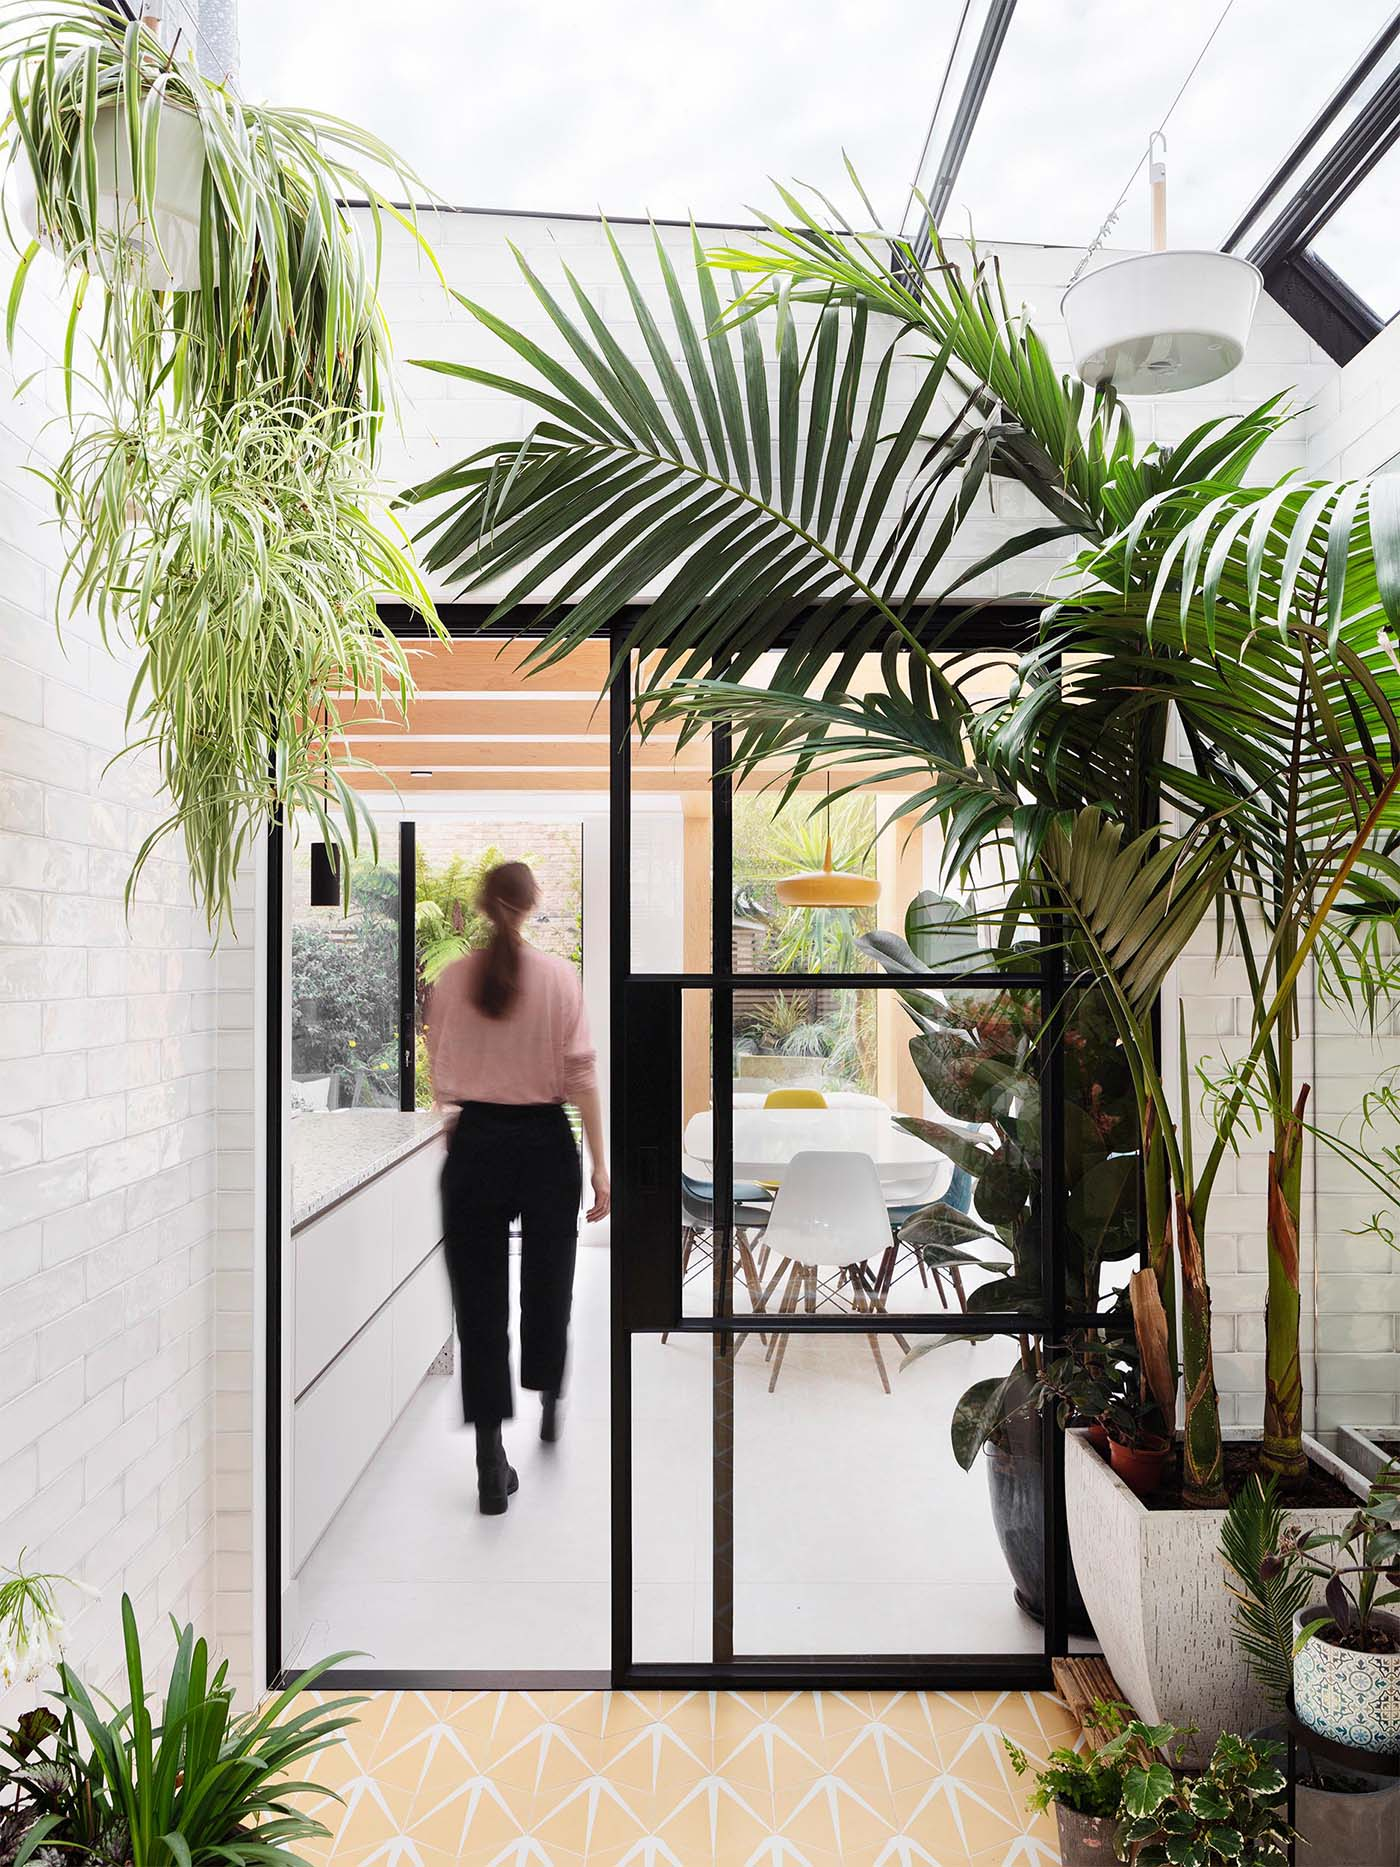 An interior garden room with automated skylights, Ochre floor tiles, an irrigation system, and plenty of plants.